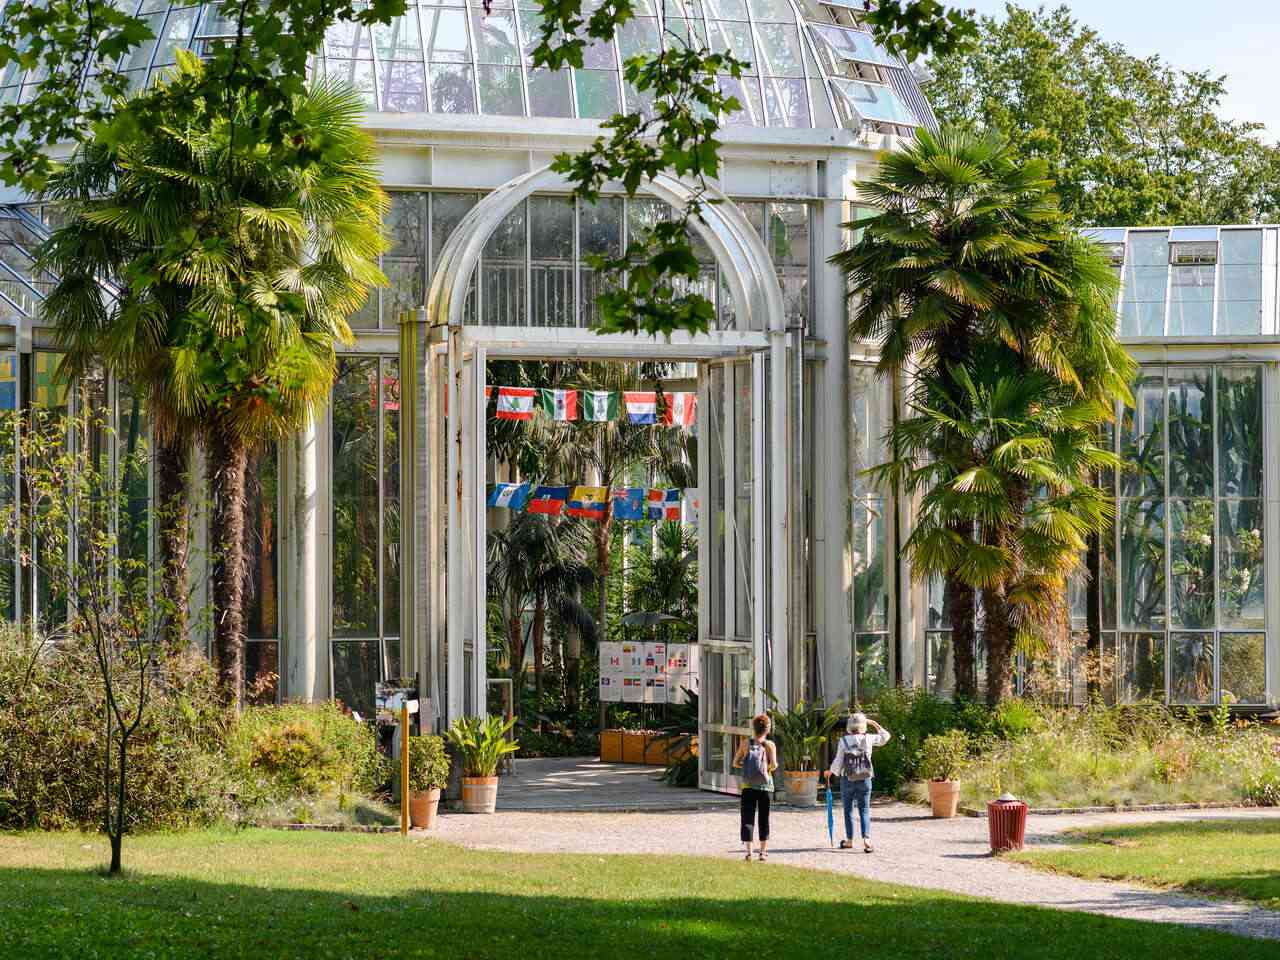 People standing in front of a large glass greenhouse with palm trees